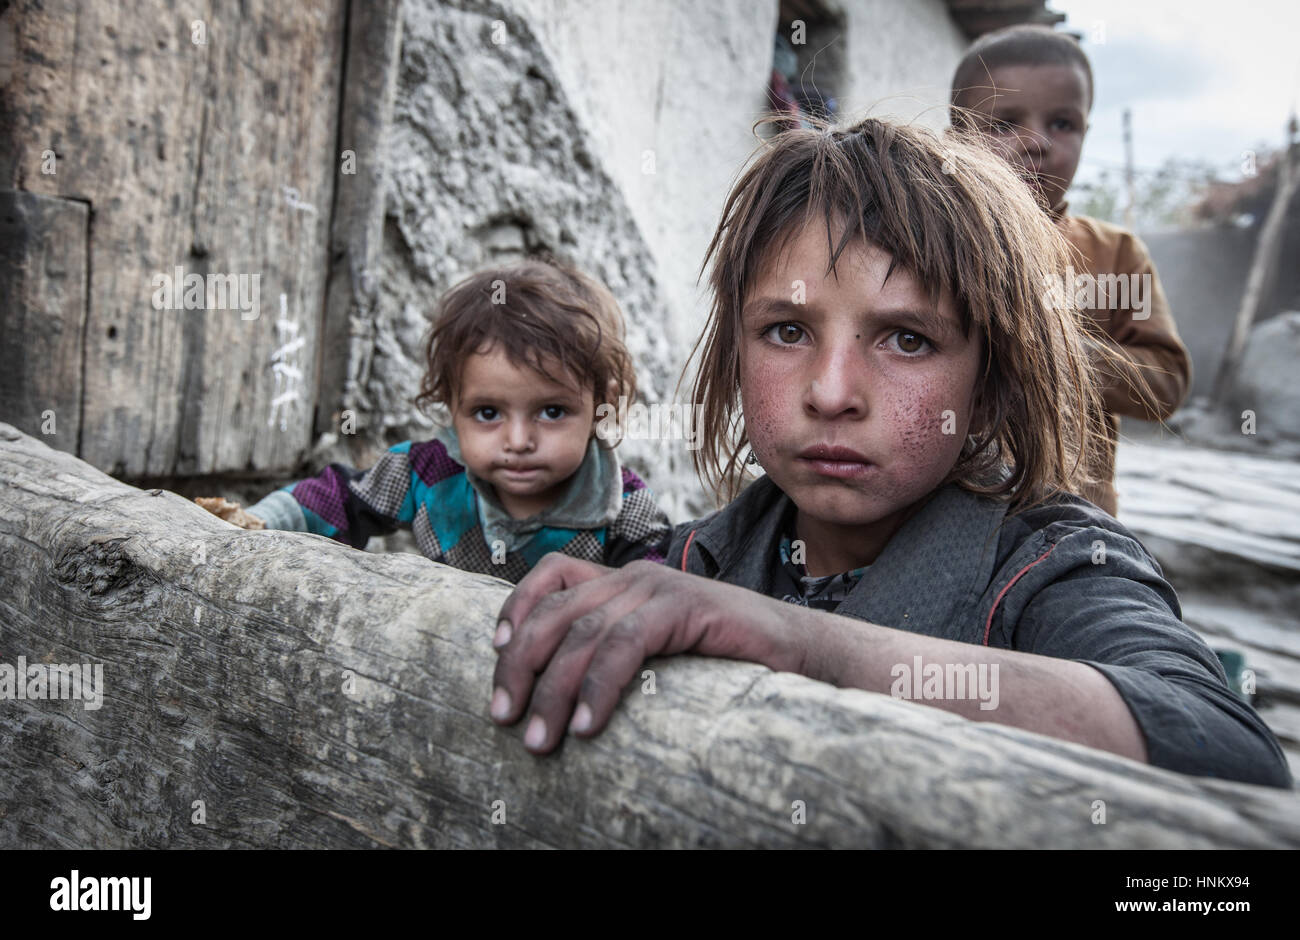 kids poor Afghanistan, Wakhan corridor a portrait of two poor and dirty kids with sad  eyes expression